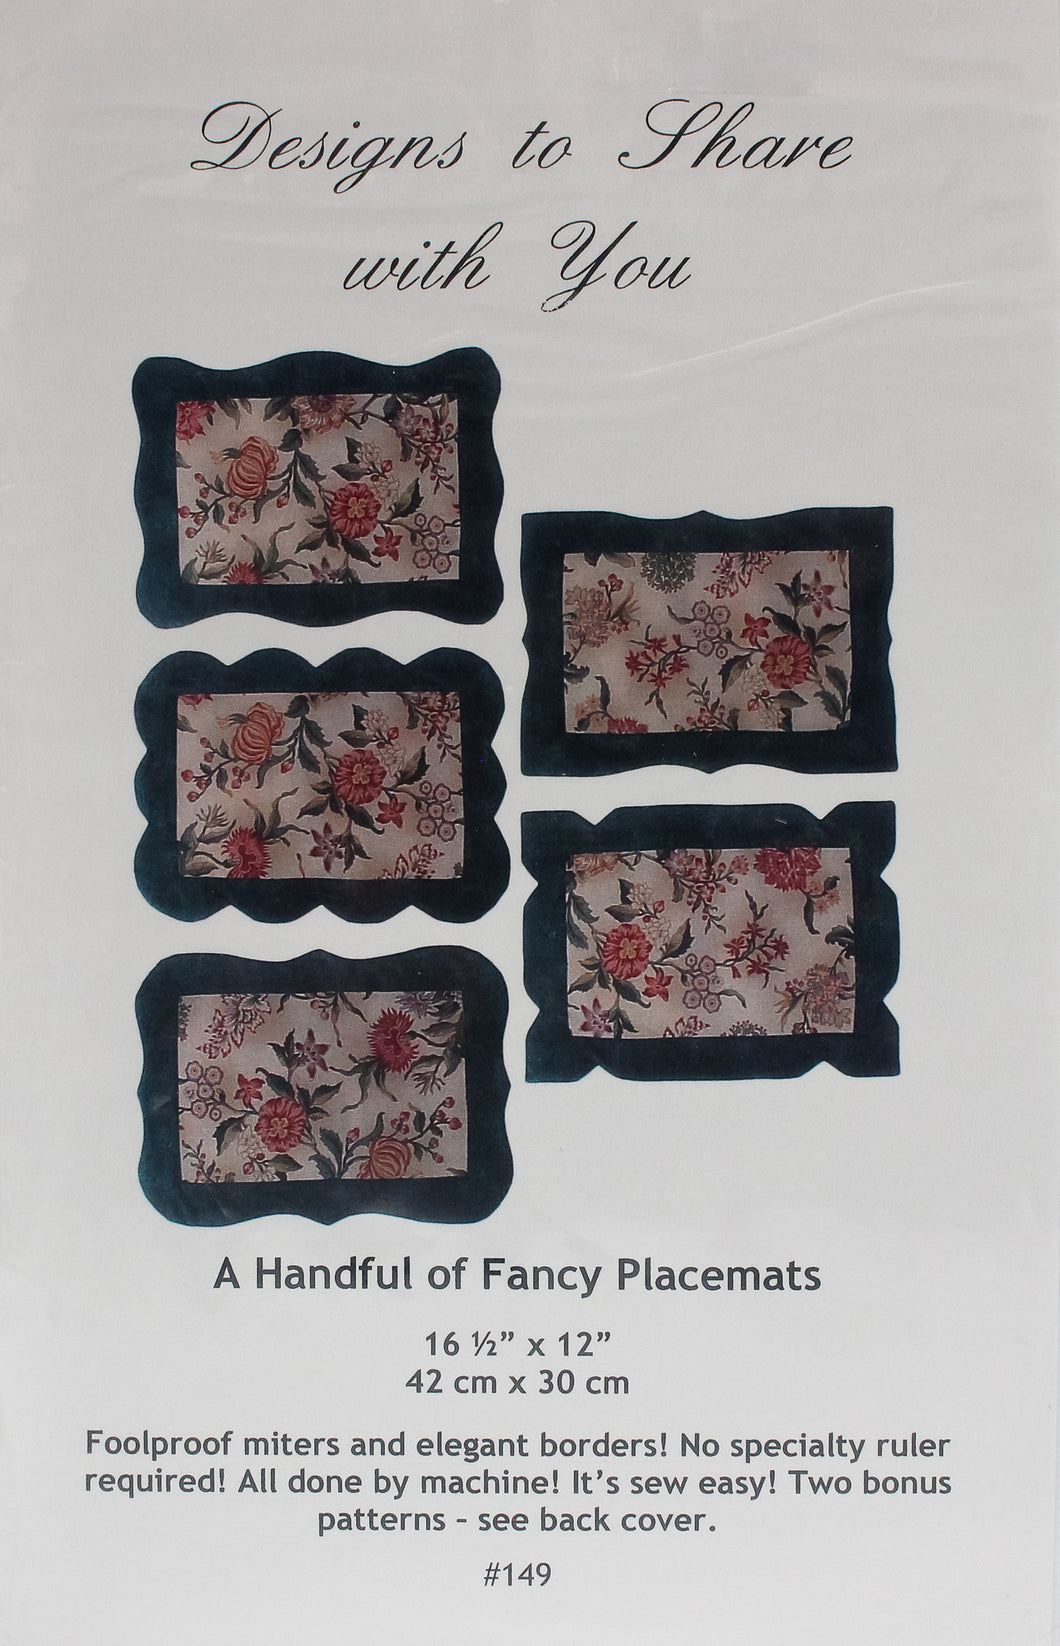 A Handful of Fancy Placemats